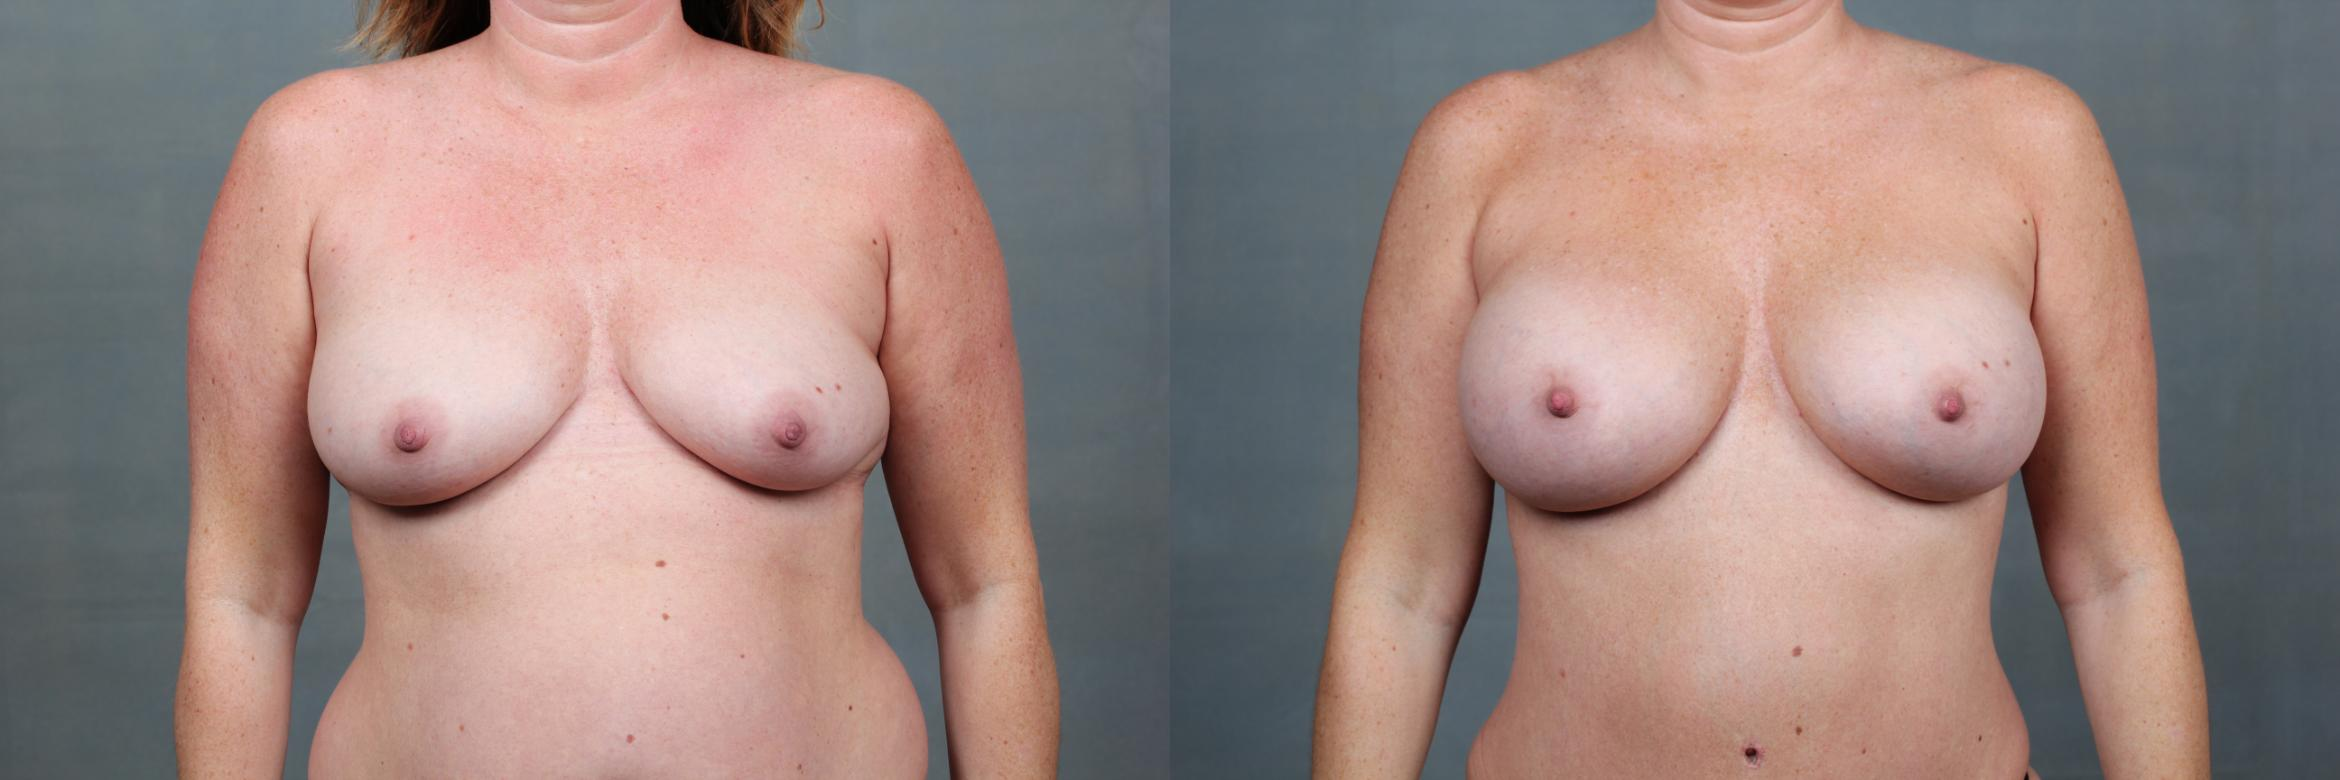 Mommy Makeover Case 741 Before & After Front | Louisville, KY | CaloAesthetics® Plastic Surgery Center